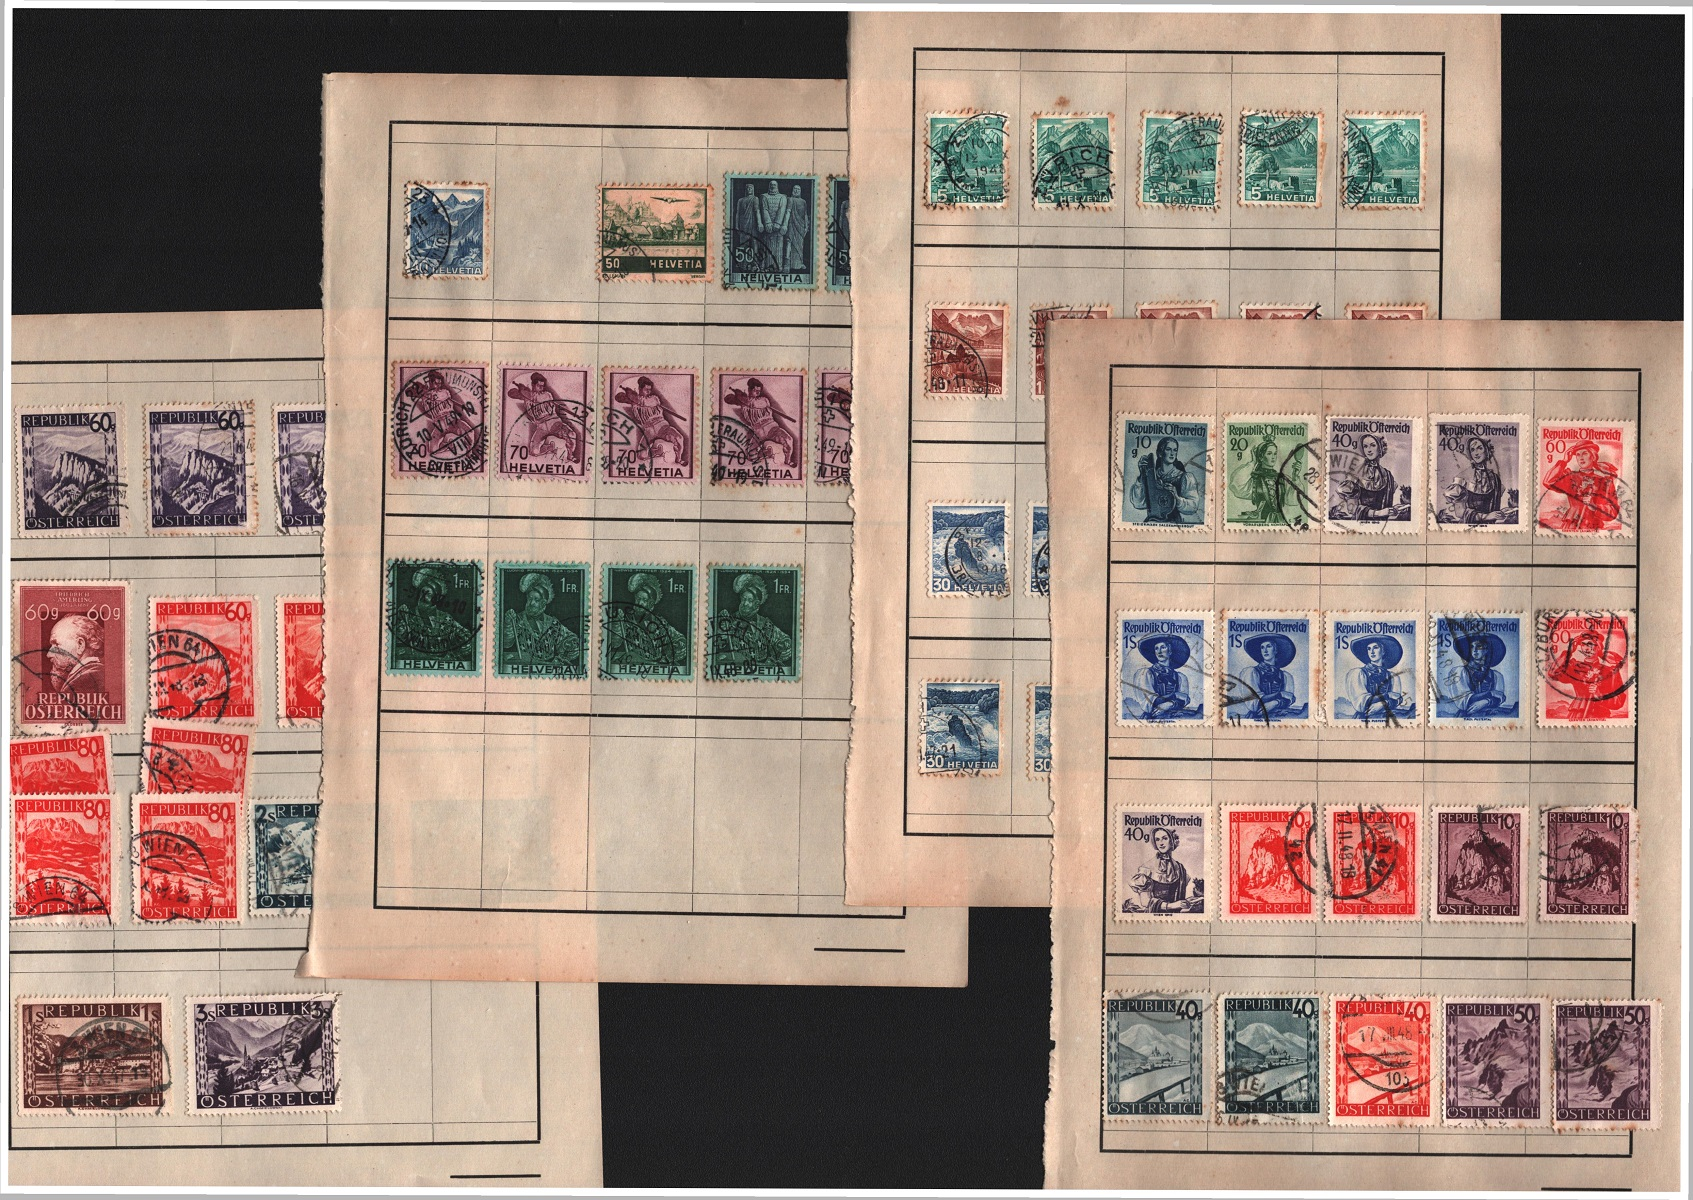 Stamp collection on 5 loose pages. Includes Austria, Switzerland and Germany. Also includes loose